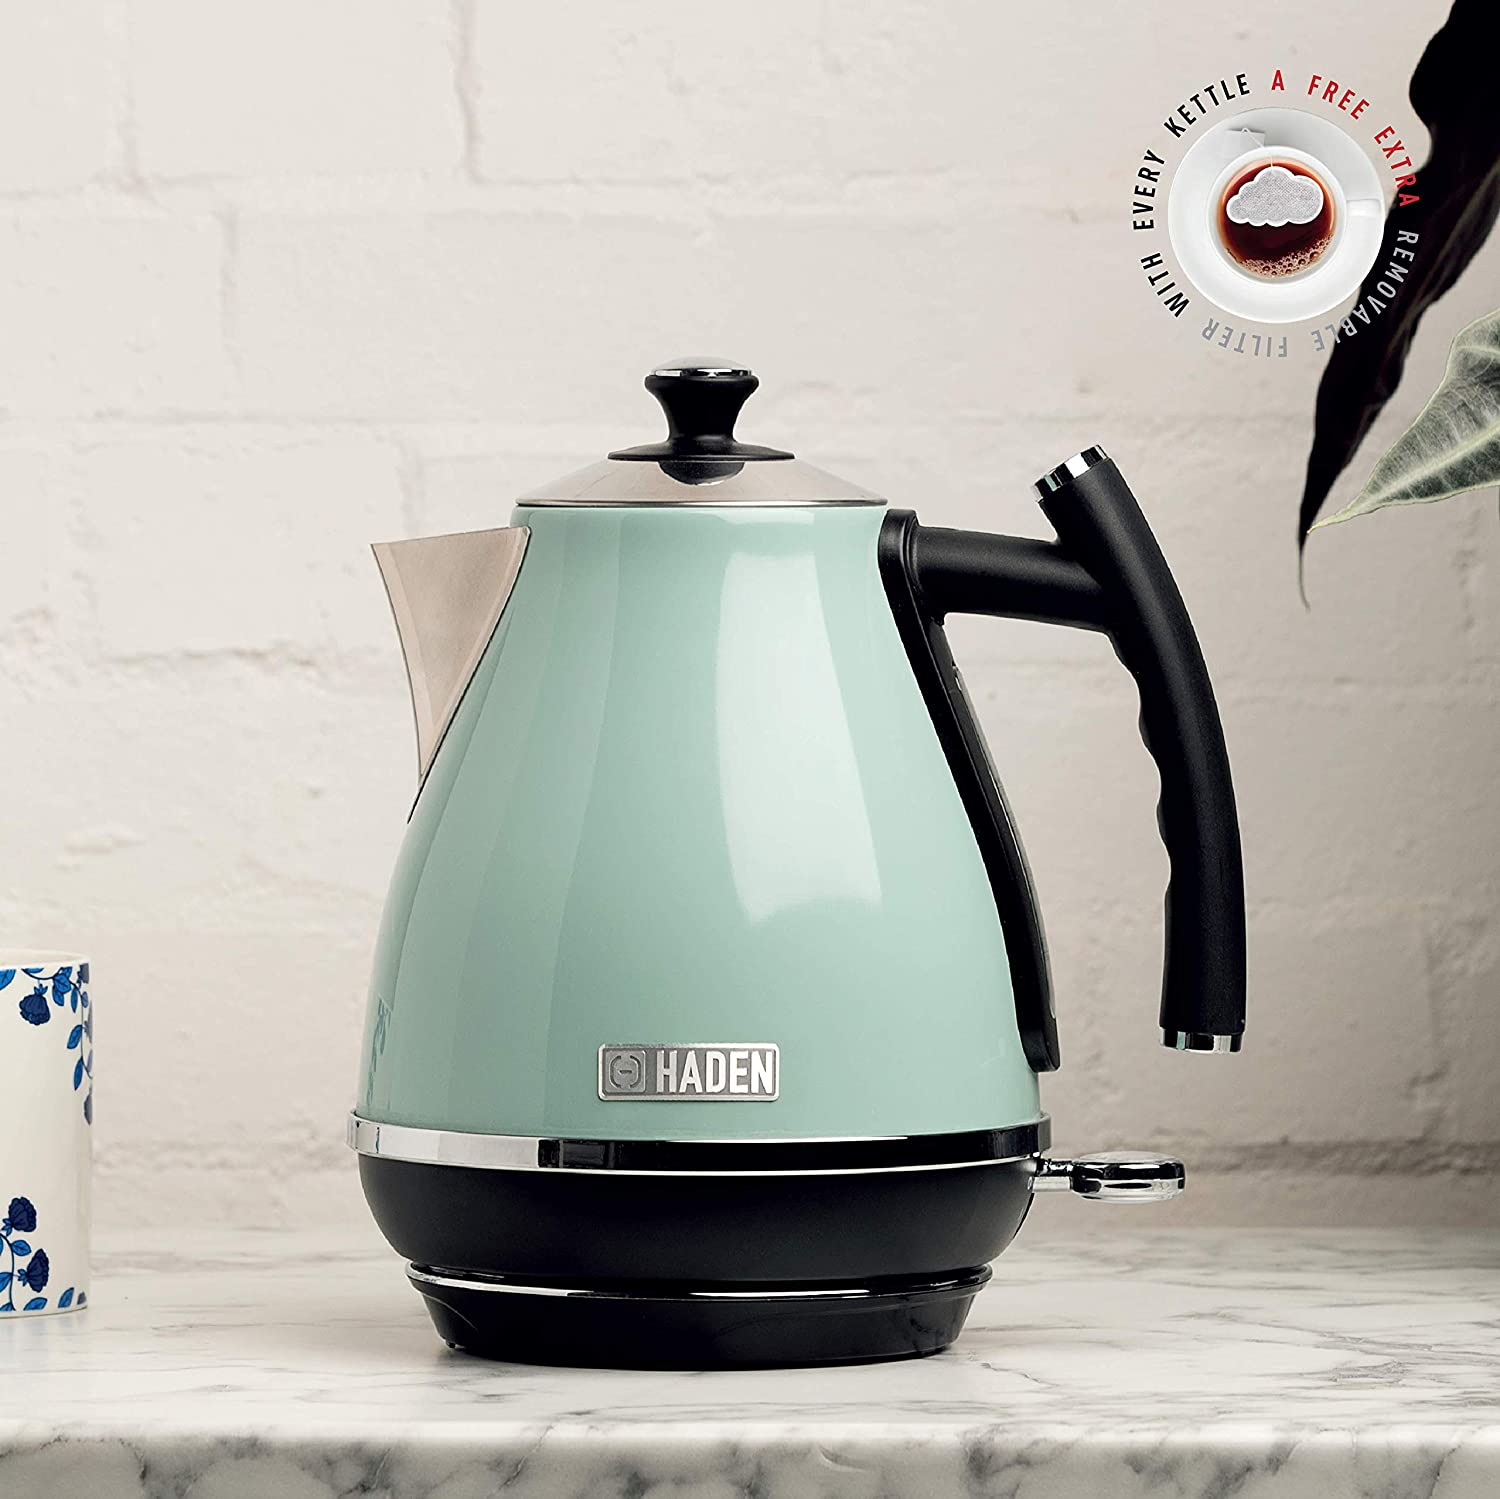 Haden-183538-Cotswold-Sage-Green-Kettle